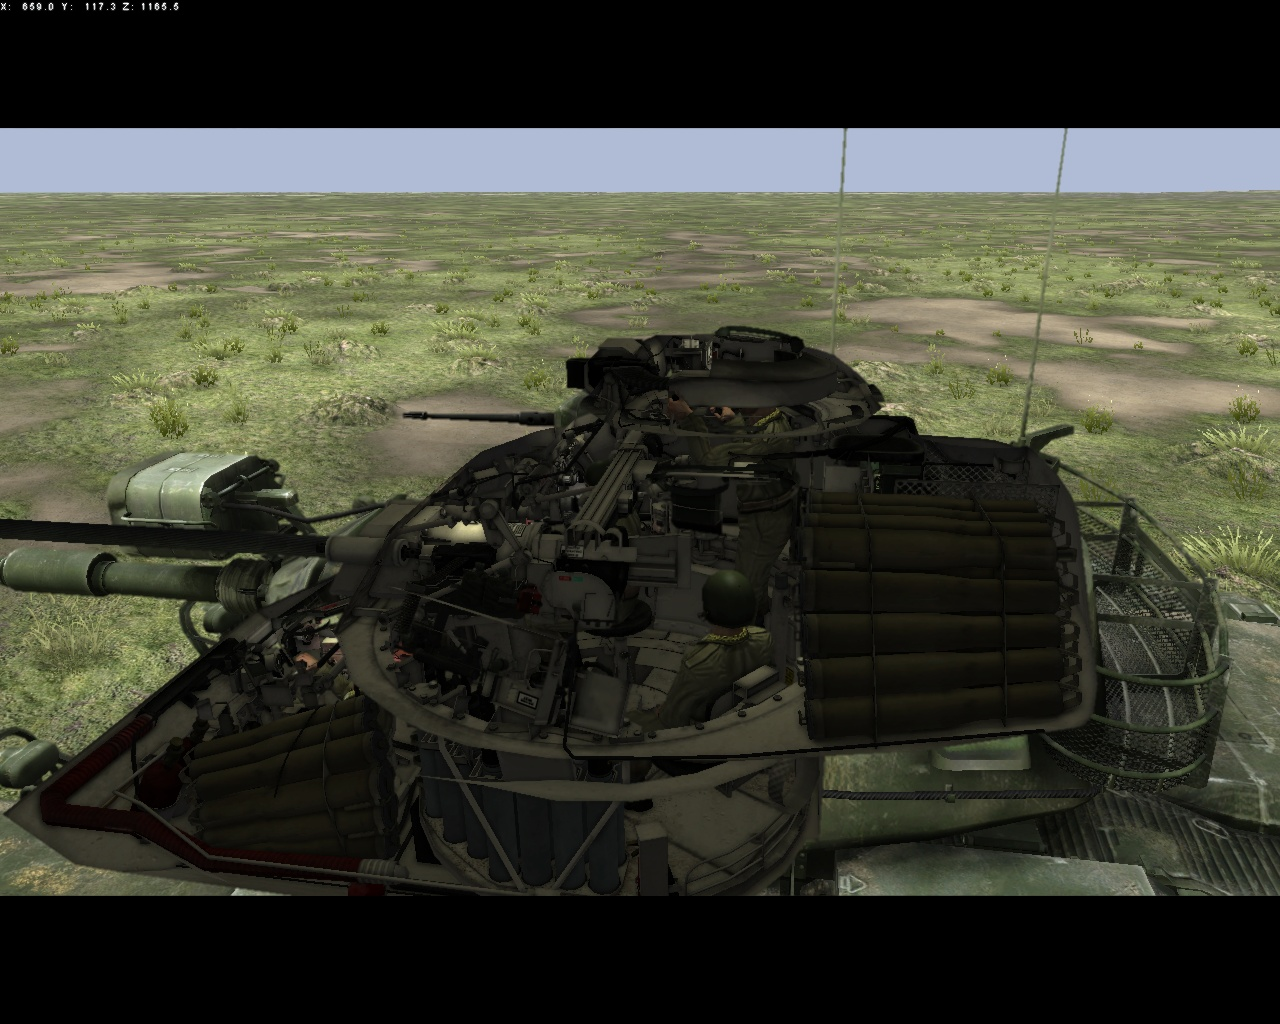 steel war The war machine game steel legions puts you in control of a gigantic combat vehicle in the age of steel legions is a fast-paced game with countless options for customizing your retro-futuristic war.